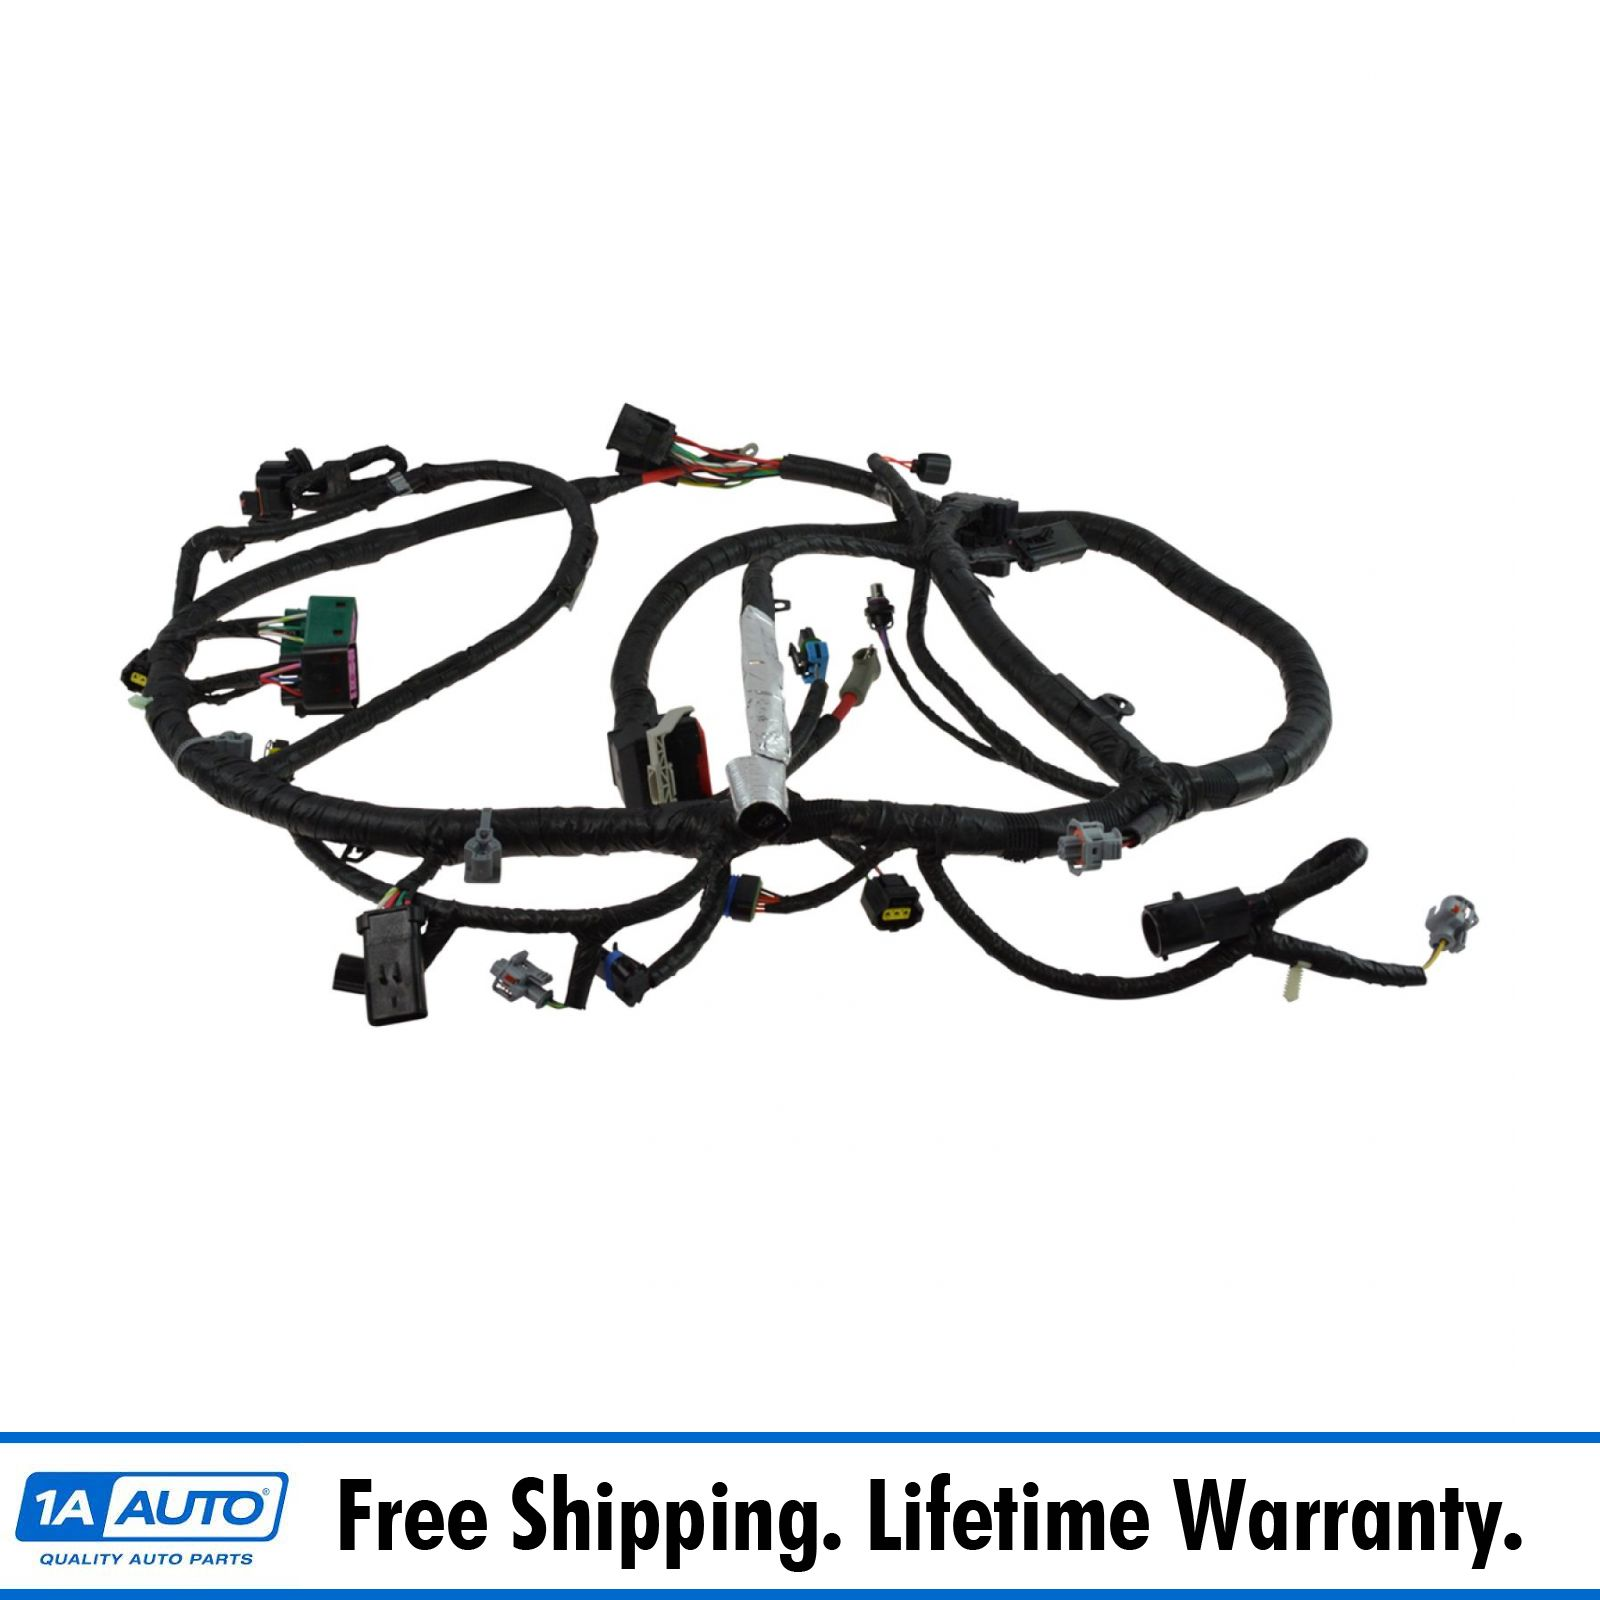 OEM Diesel Engine Wiring Harness for 04 Ford F250 F350 F450 04-05 Excursion  6.0L